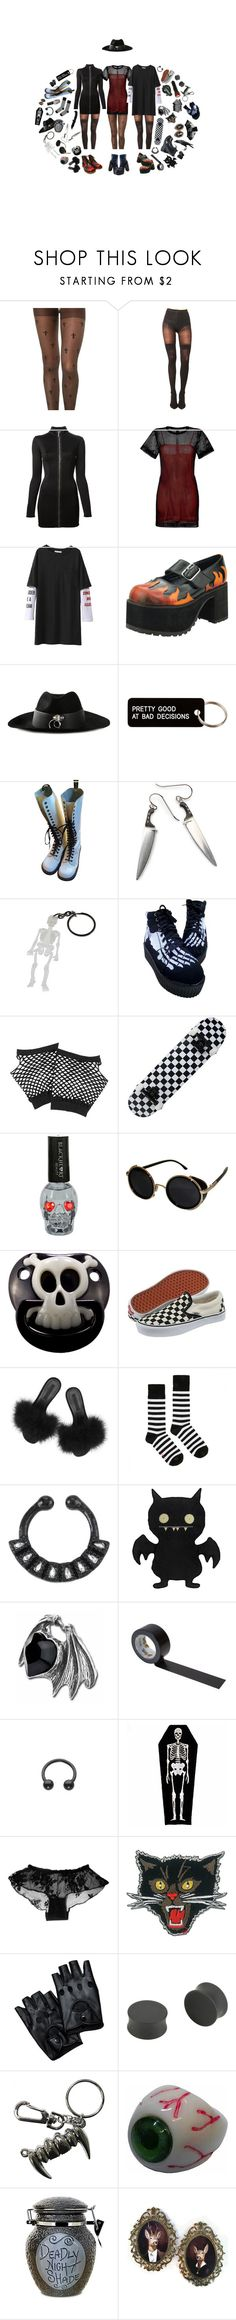 """HAPPY HALLOWEEEN"" by s8tan ❤ liked on Polyvore featuring S'well, Pretty Polly, Anthony Vaccarello, Sandro, T.U.K., UNIF, Various Projects, Dr. Martens, Forever 21 and Equipment"